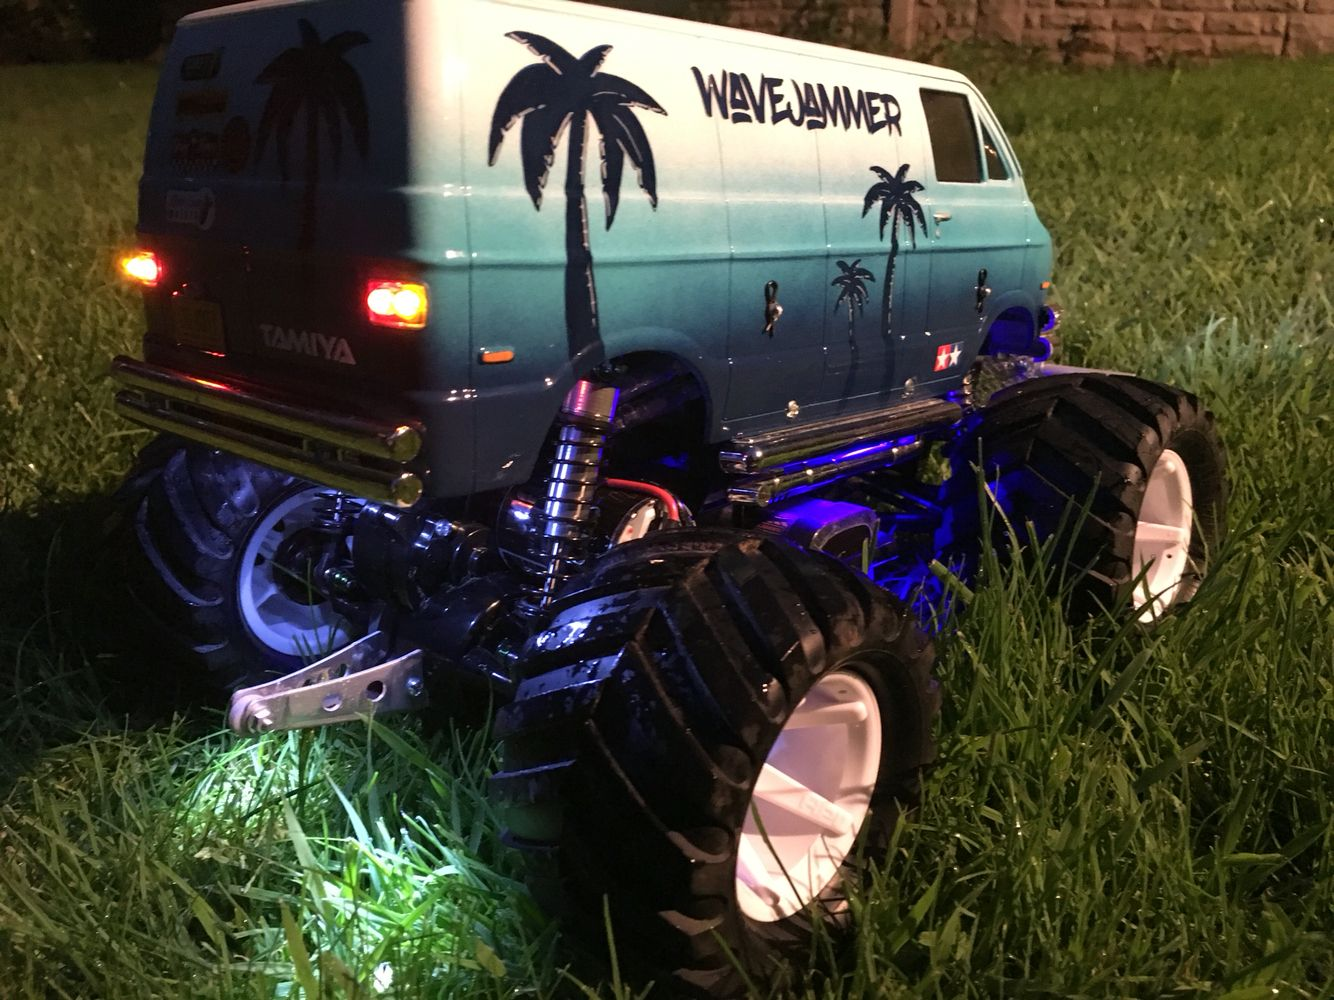 Tamiya Lunchbox 1 12 Rc Monster Truck Converted To The Wavejammer Monster Trucks Rc Monster Truck Rc Cars Diy